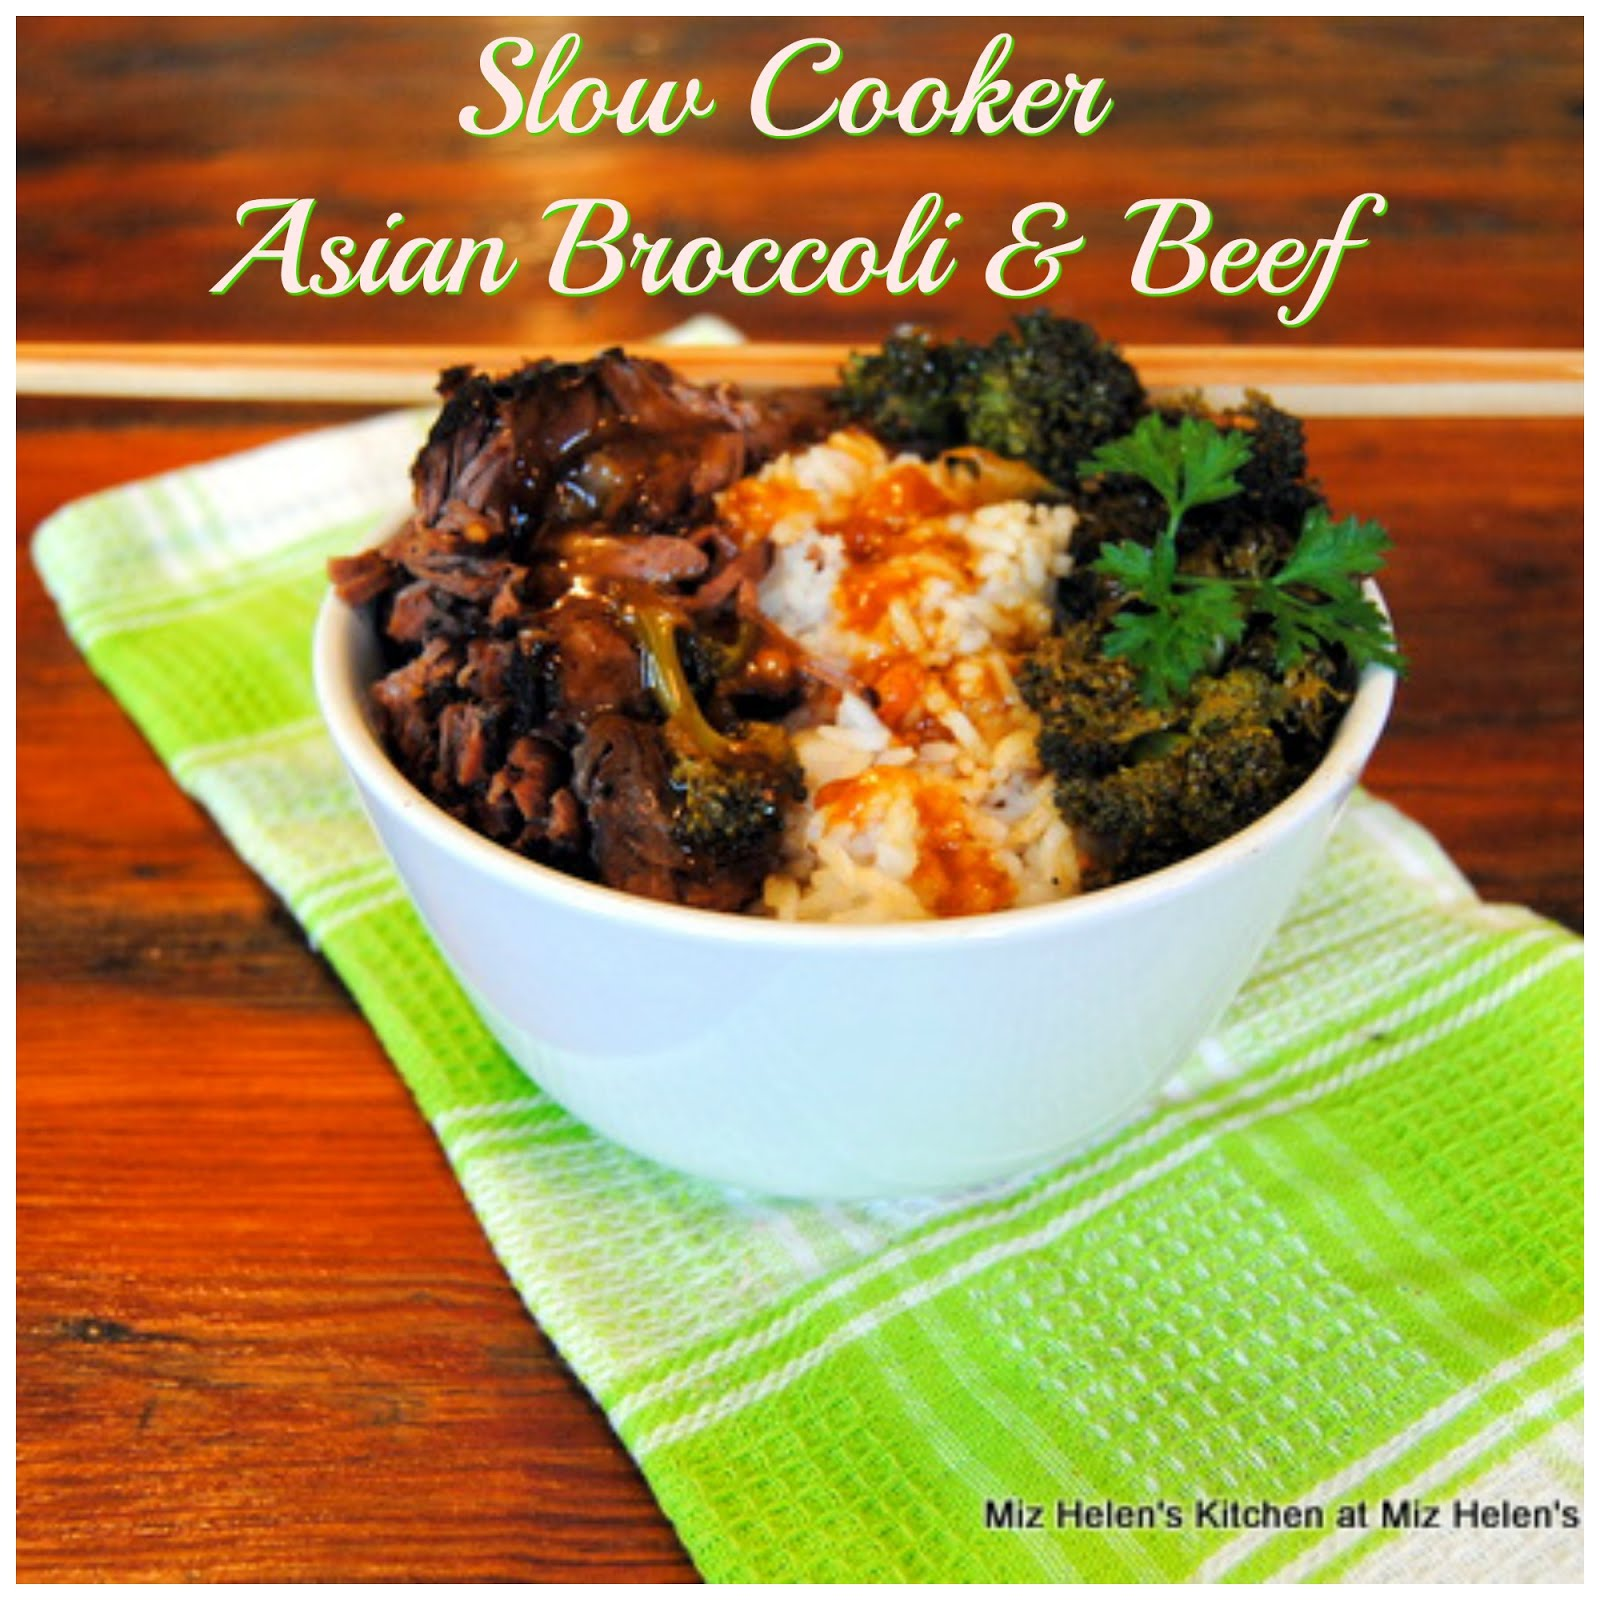 Slow Cooker Asian Broccoli and Beef